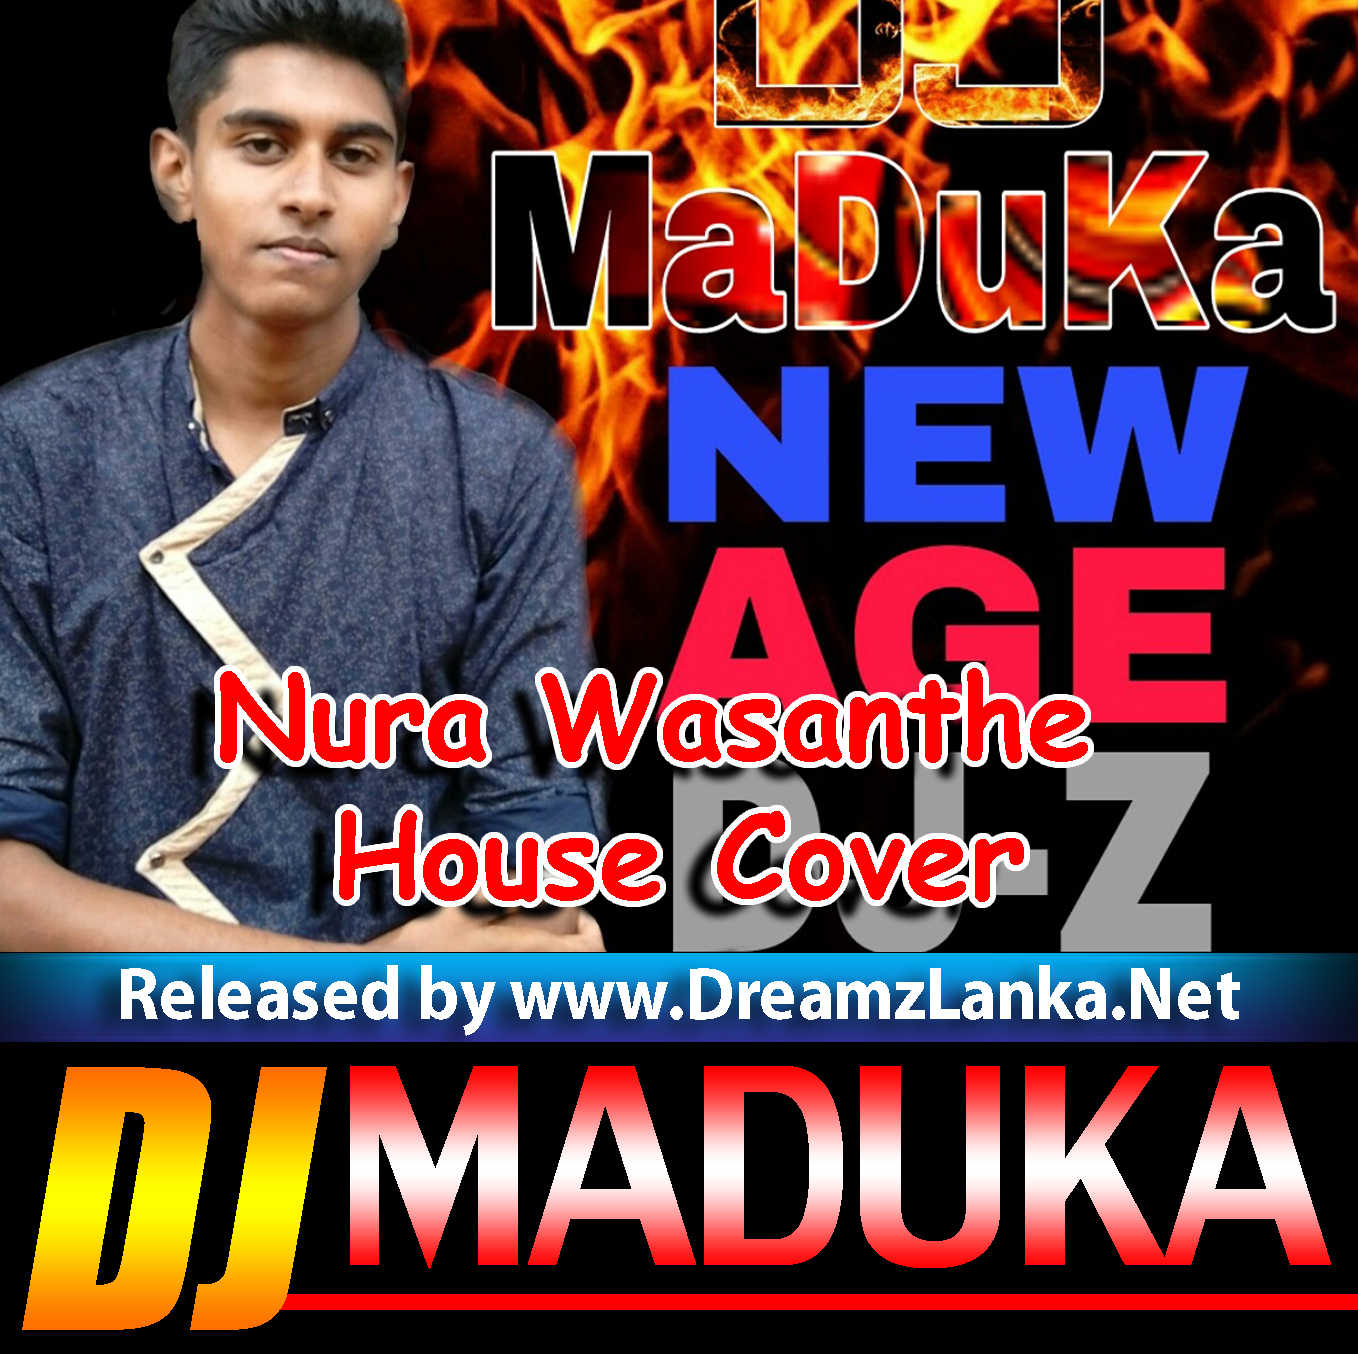 nura wasanthe house cover dj maduka official welcome to www